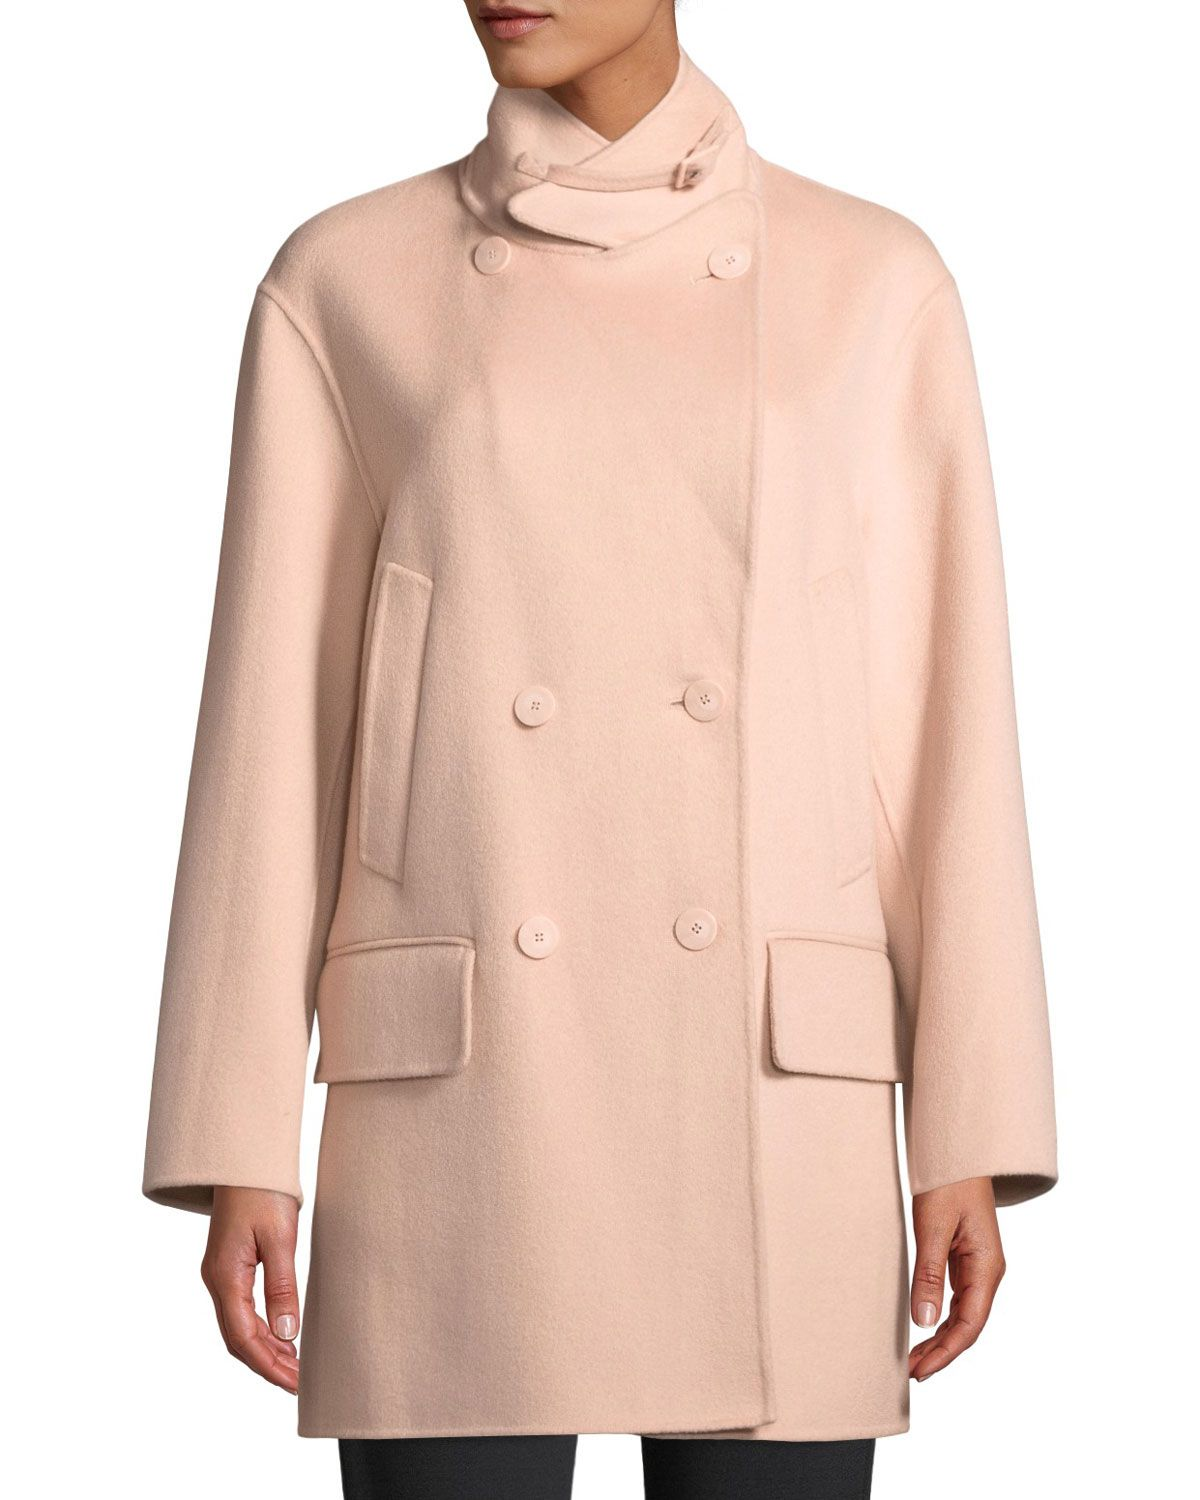 7ad244c144d Emporio Armani Double-Breasted Cashmere Pea Coat in 2019 | NOT ...